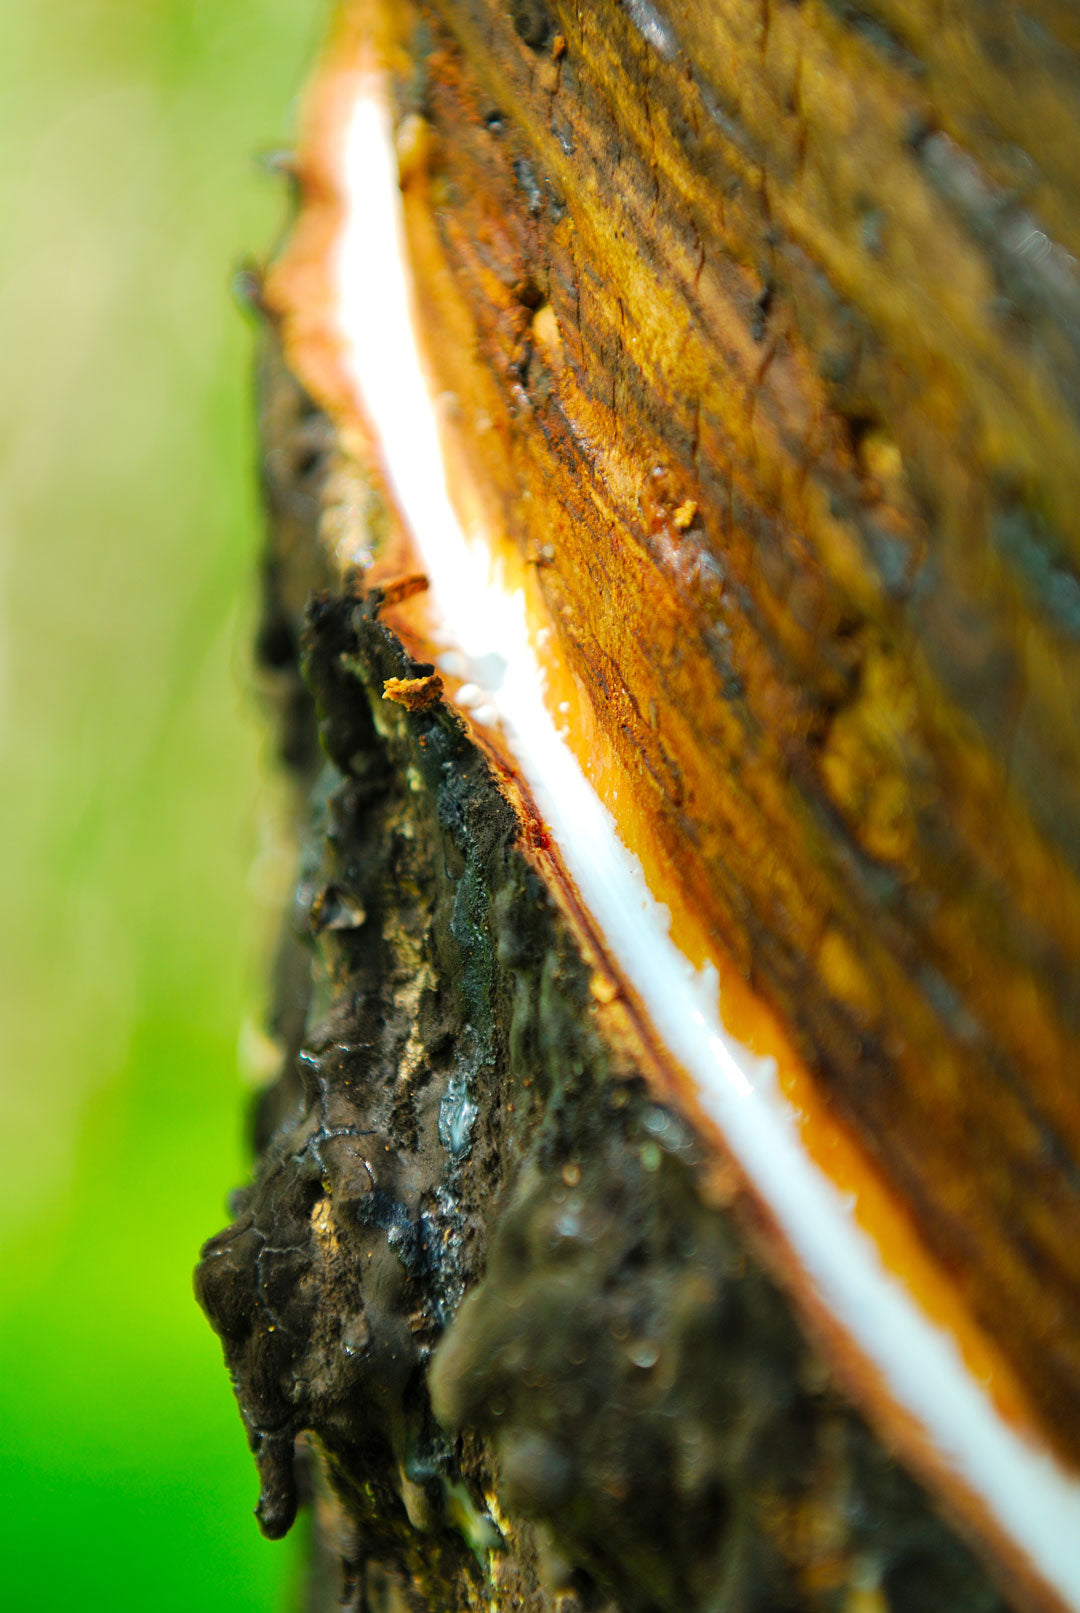 Close view of white latex milk from the Hevea brasiliensis rubber tree